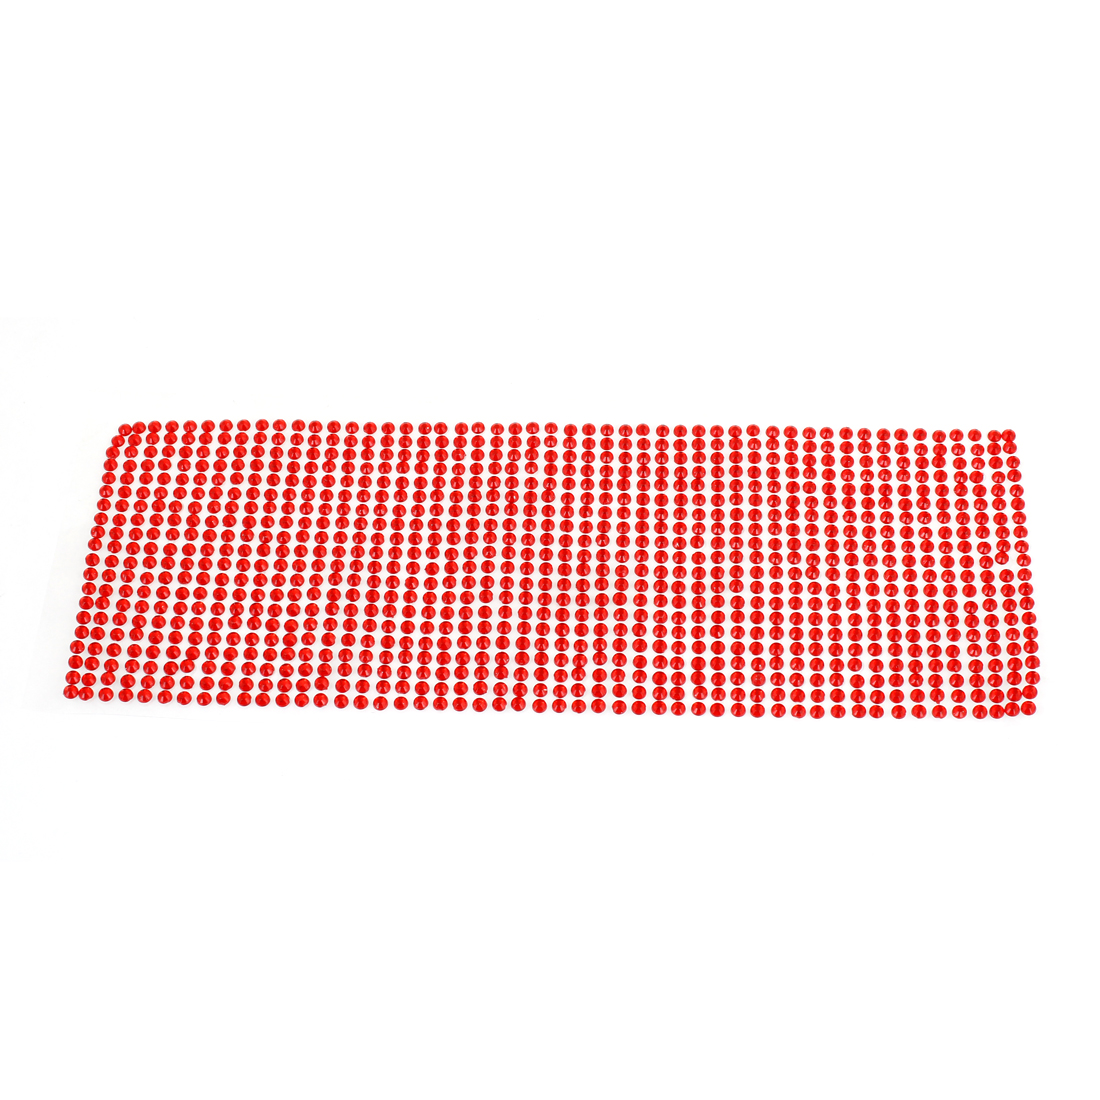 Car Vehicle Exterior Red Mini Rhinestones Decor Stickers Ornament 25.5cm x 9cm